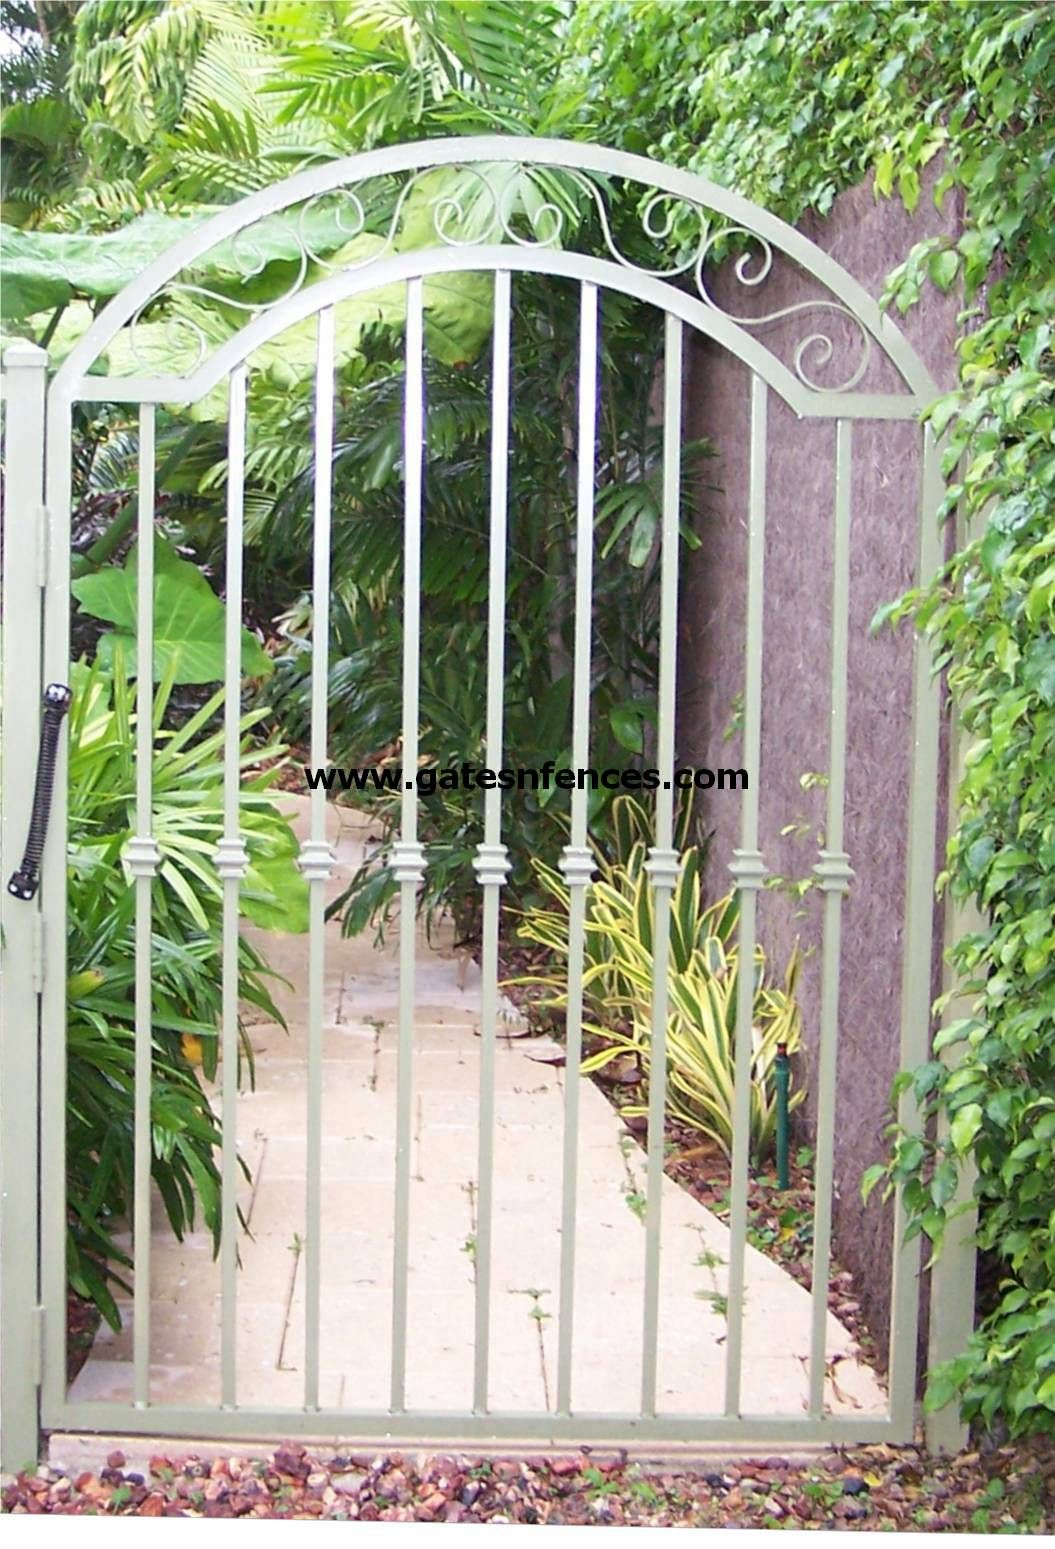 Iron garden gate - Garden Gates Decorative Gates Wrought Iron Aluminum Garden Custom Gate